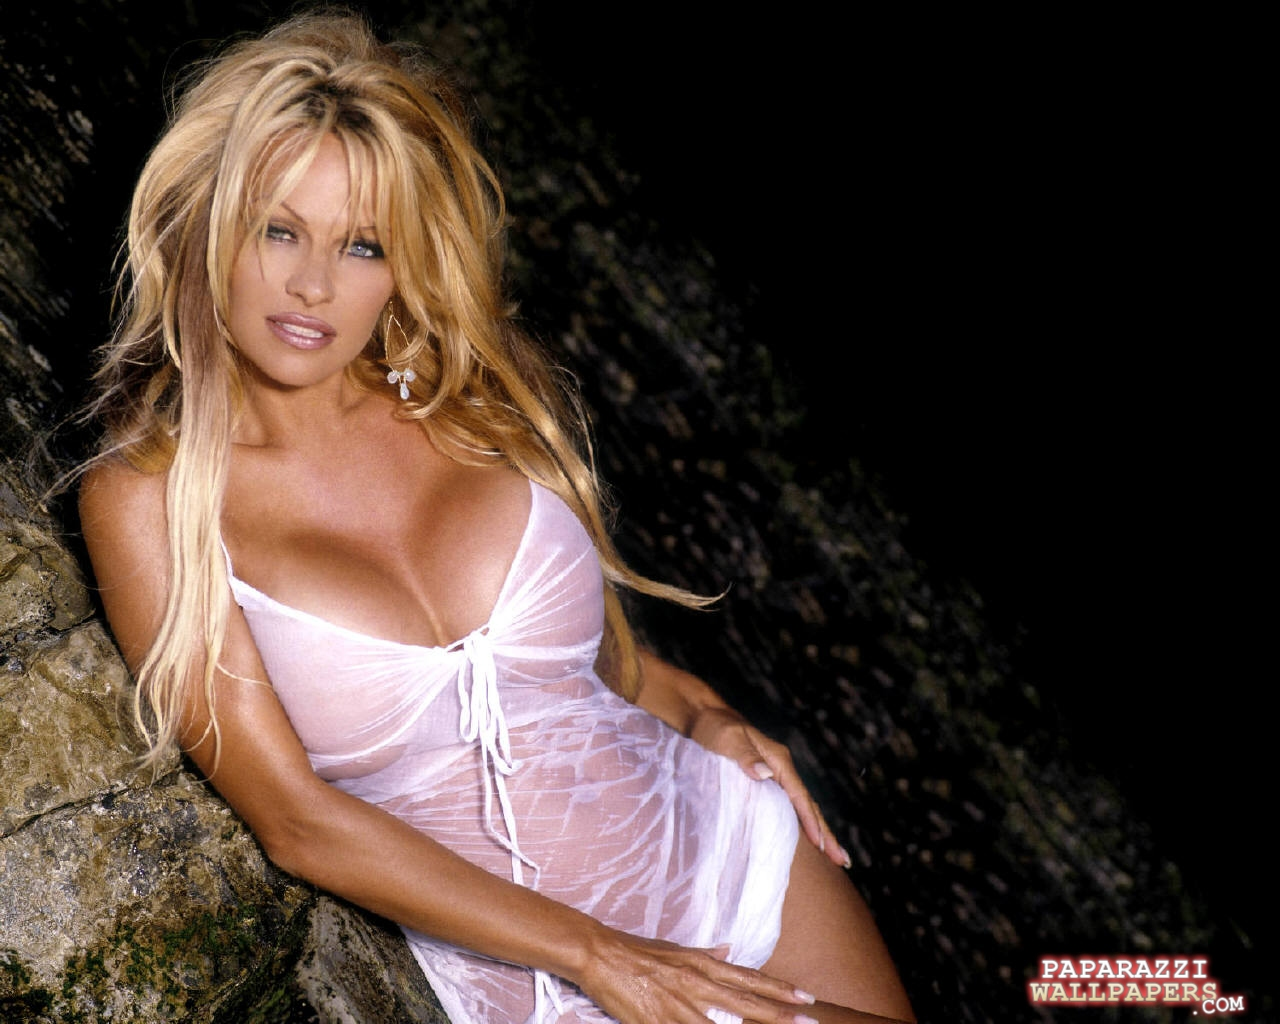 pamela anderson wallpapers 118